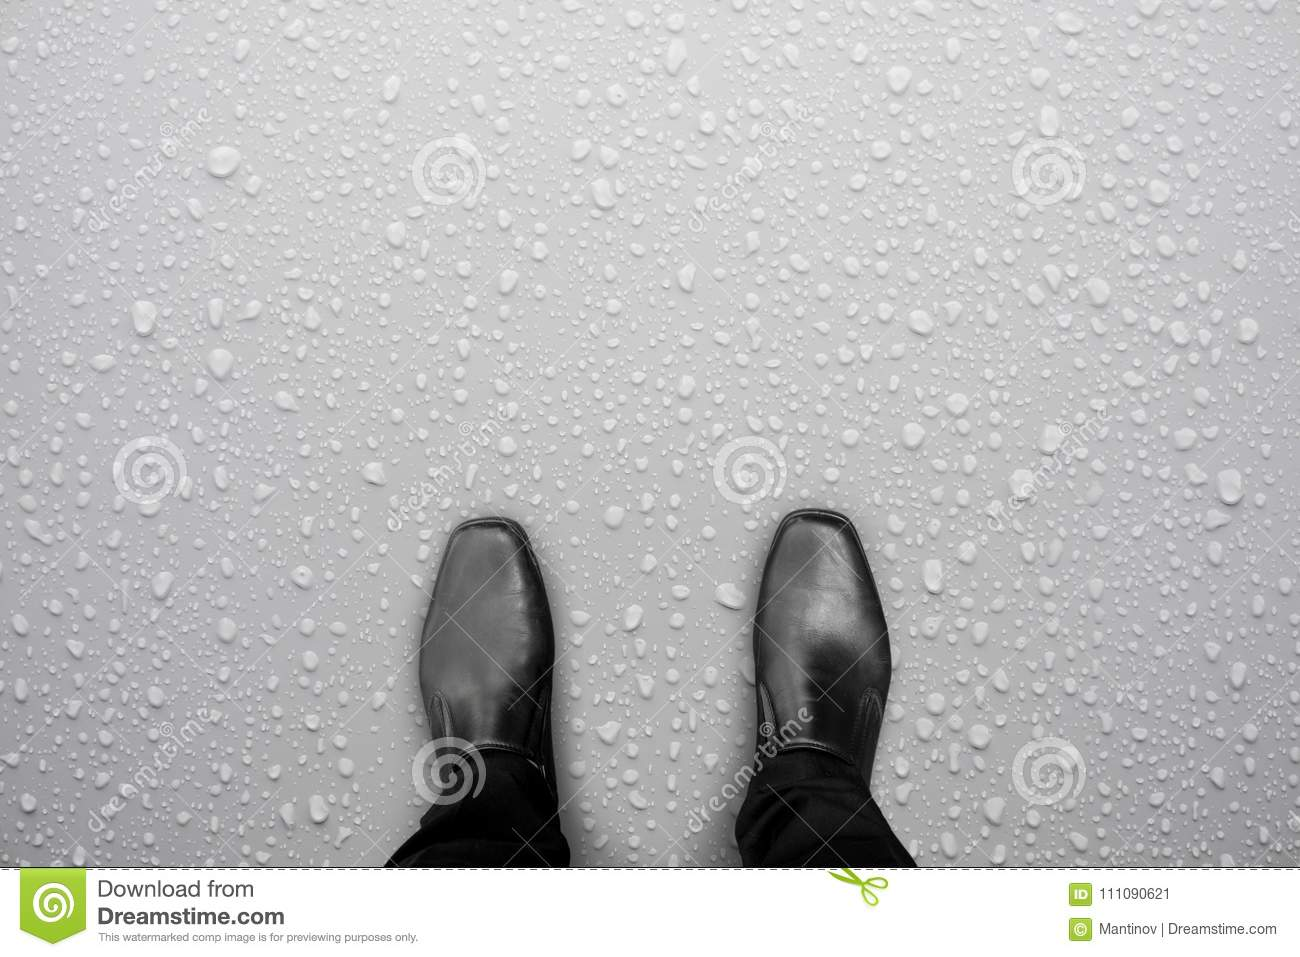 6bf010768001ad Black Shoes Standing On White Wet Floor Stock Image - Image of road ...